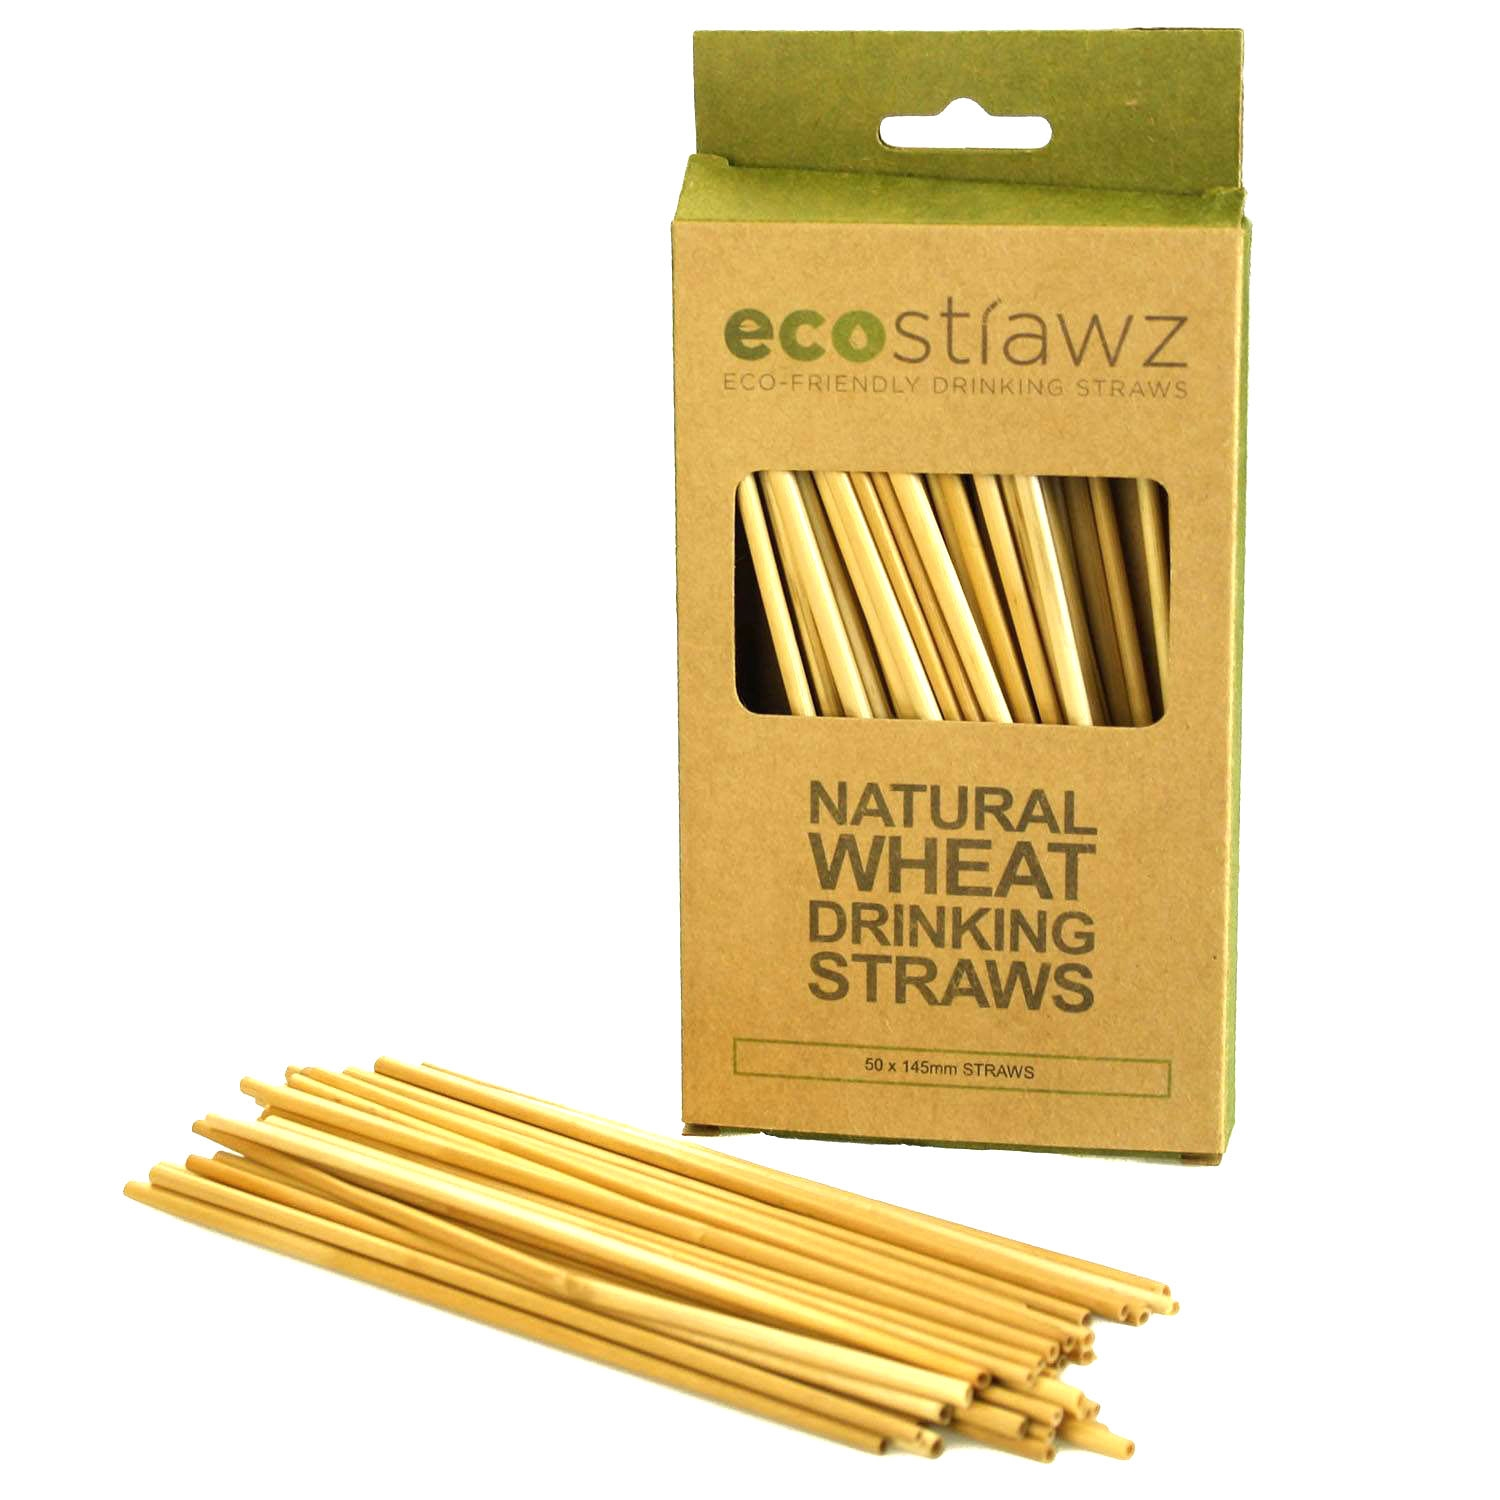 Natural wheat drinking straws